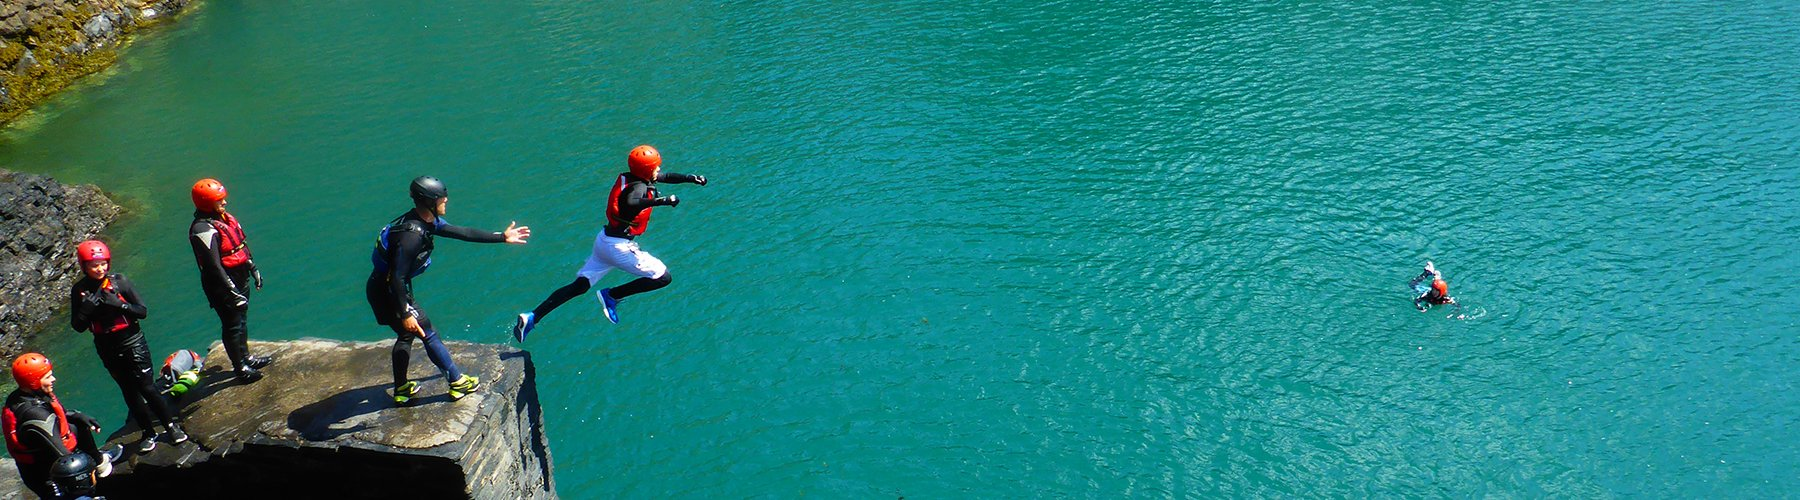 Blue Lagoon Coasteering - Irish Rugby Tours, Activities for Thrill Seekers